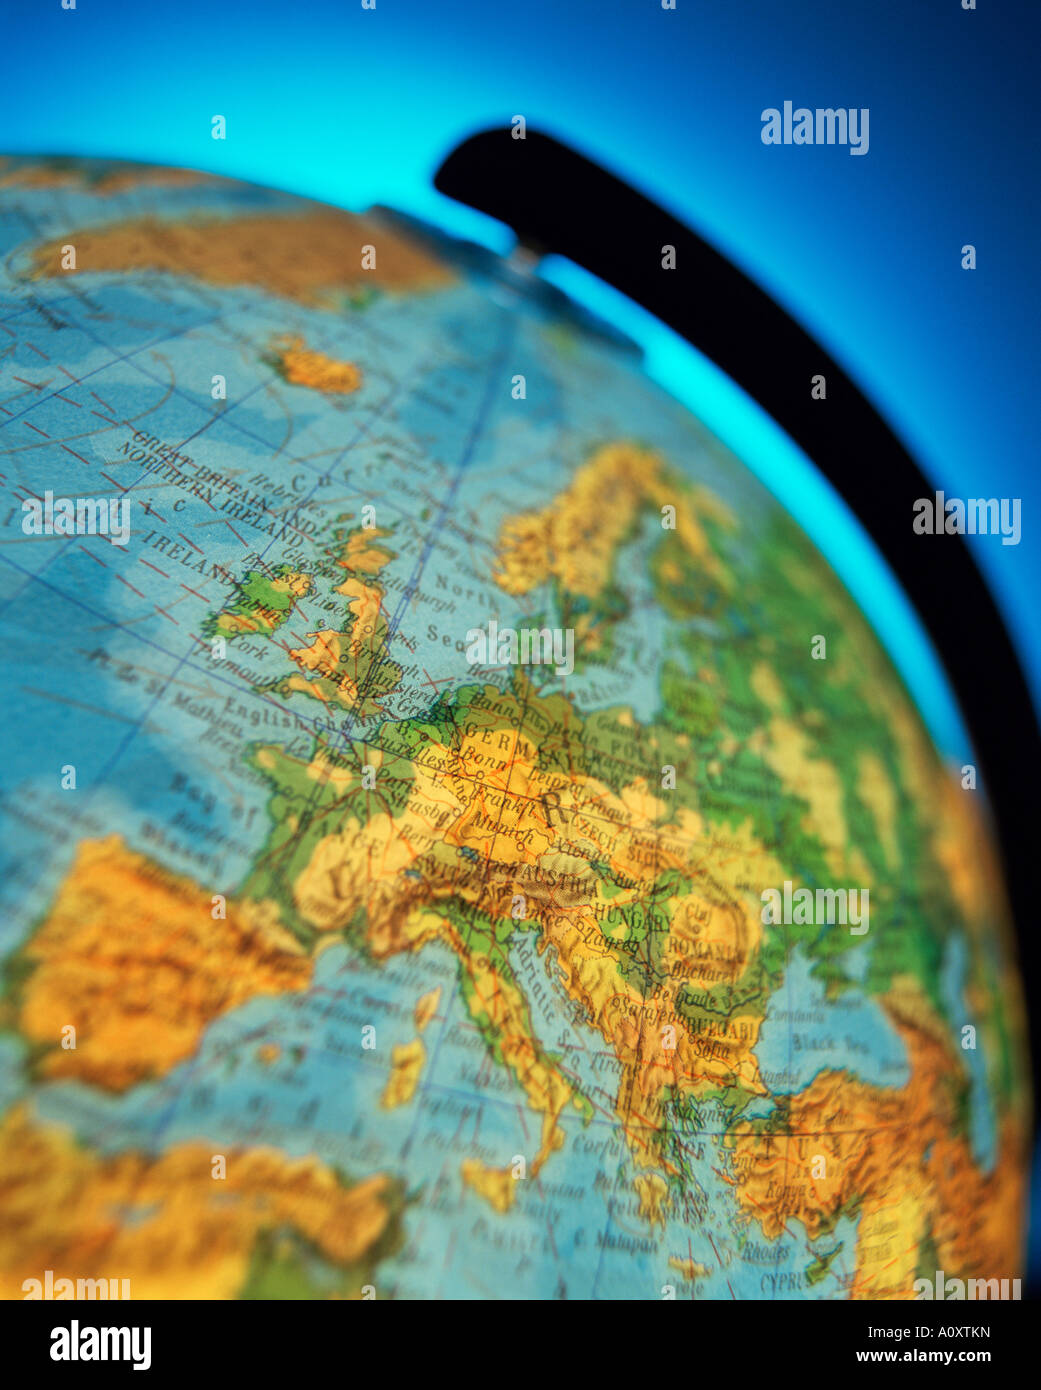 Close up of the continent of Europe on a world globe - Stock Image